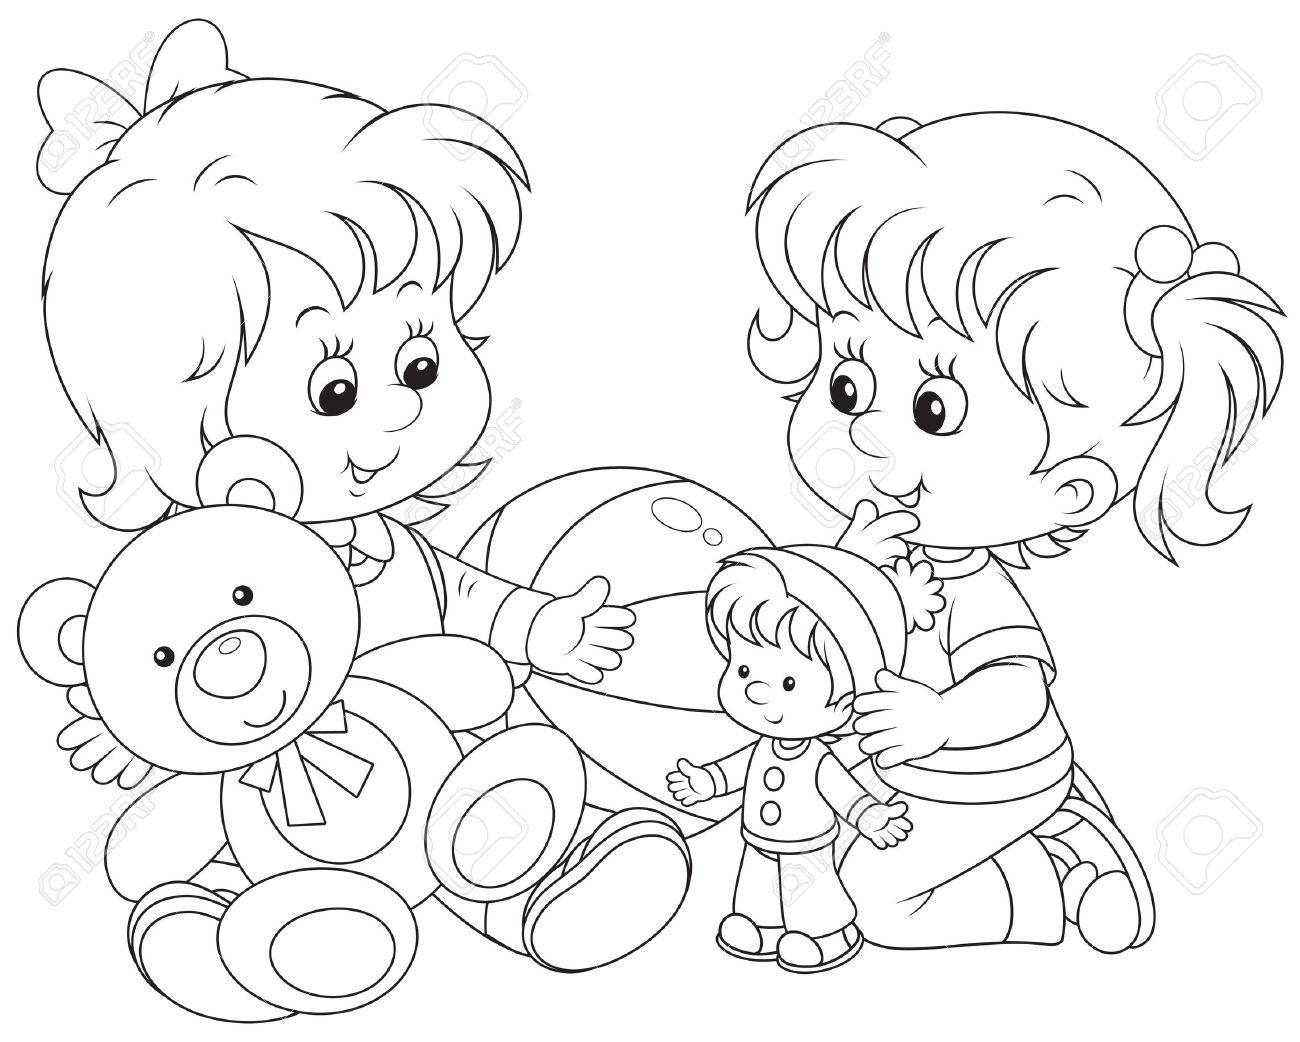 clipart black and white children playing with toys.